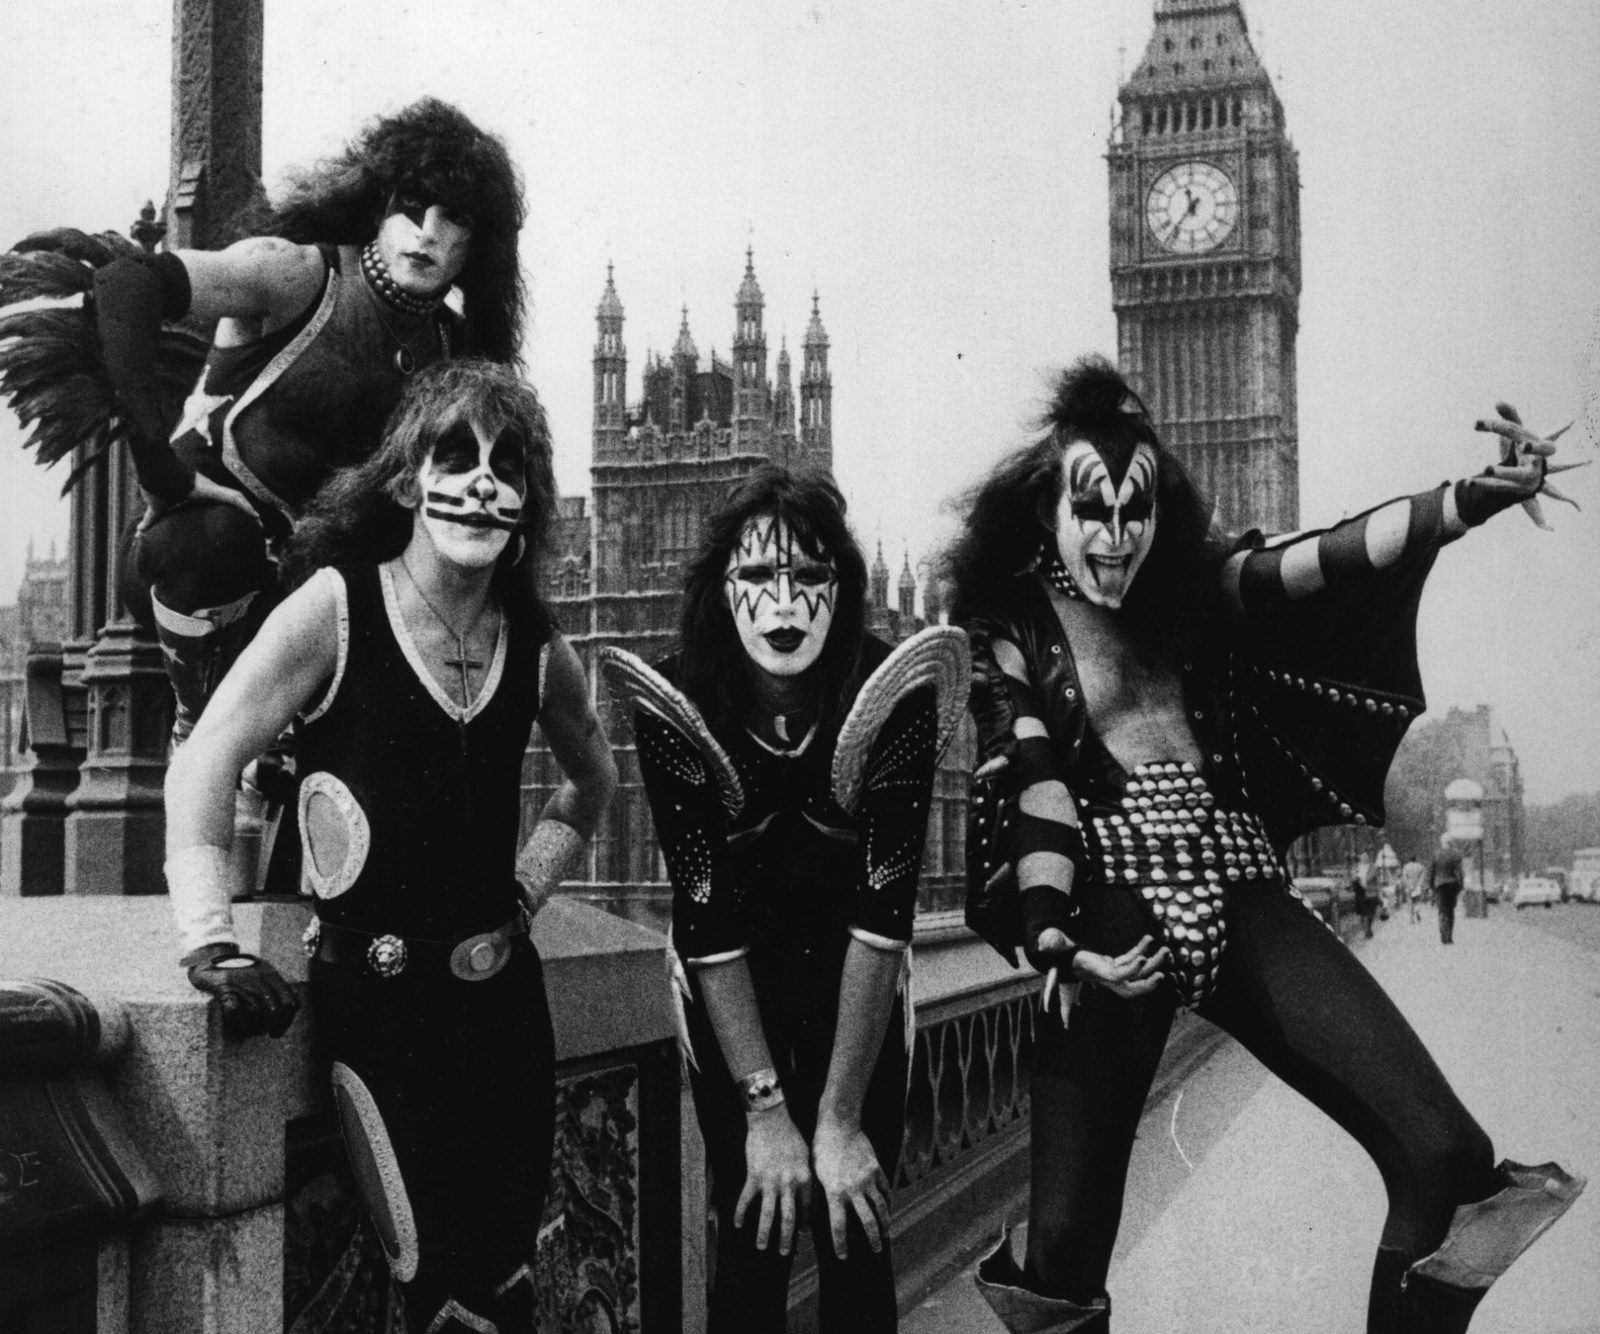 Ace Frehley - 10th May 1976 - American theatrical glam rock group Kiss pose on Westminster